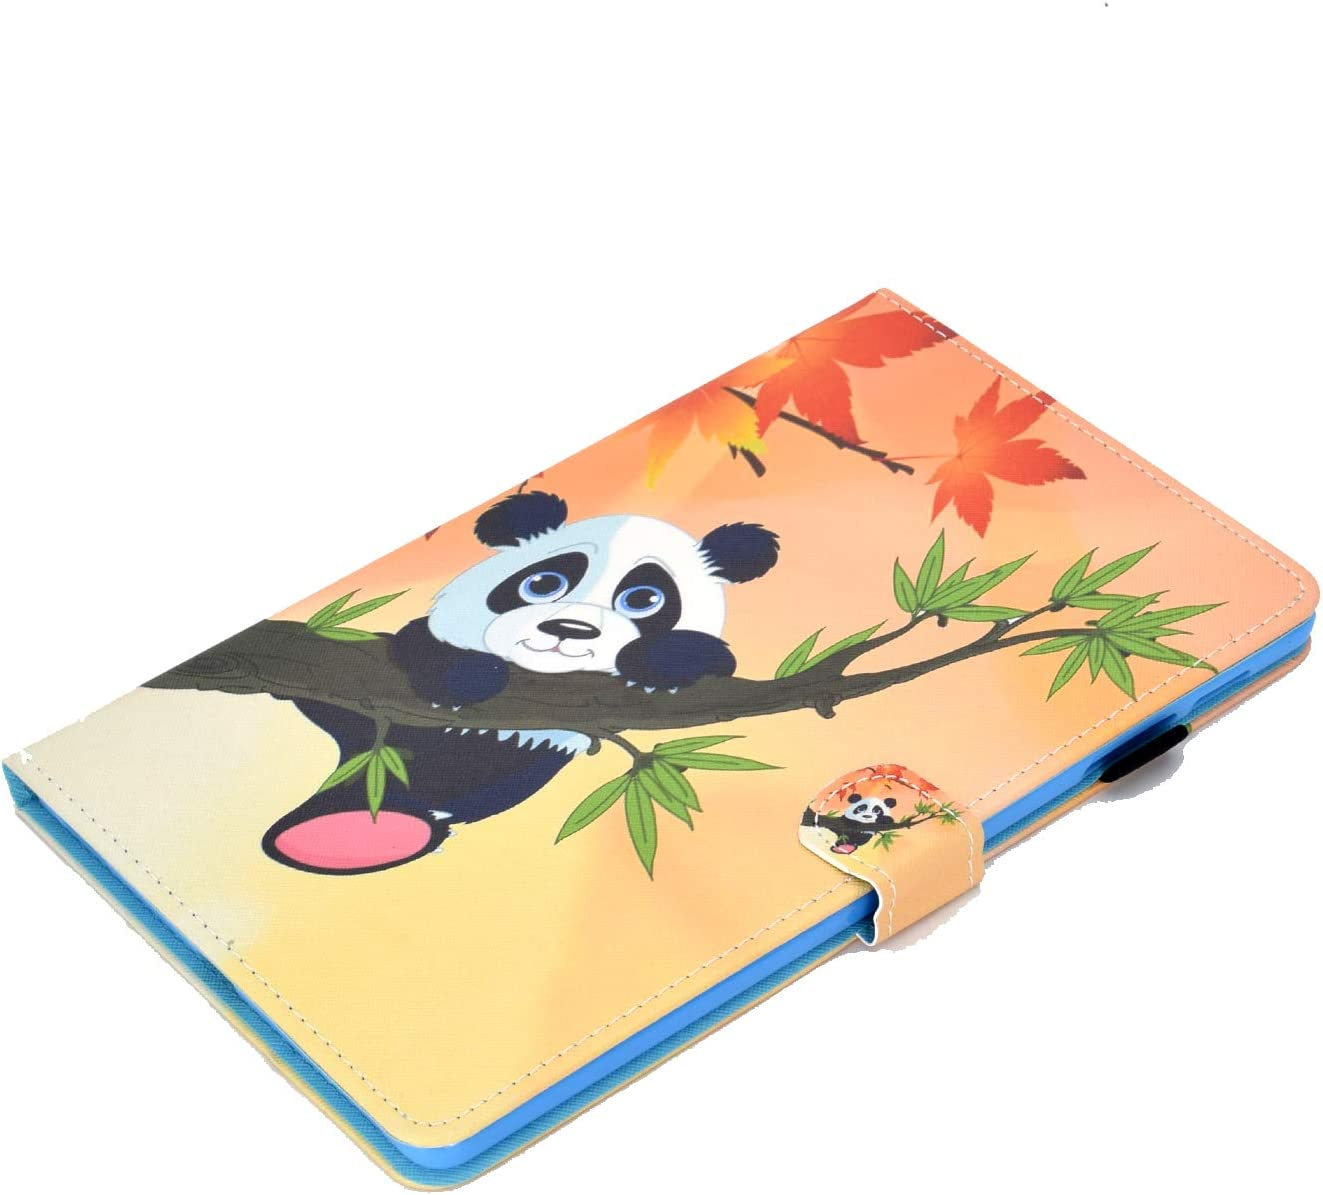 SM-T515 Music/Monkey Succtop Galaxy Tab A 2019 10.1 Inch Case PU Leather Wallet Flip Cover Magnetic Stand Function Tablet Case with Card Slot and Pen Holder for Samsung Galaxy Tab A 10.1 SM-T510